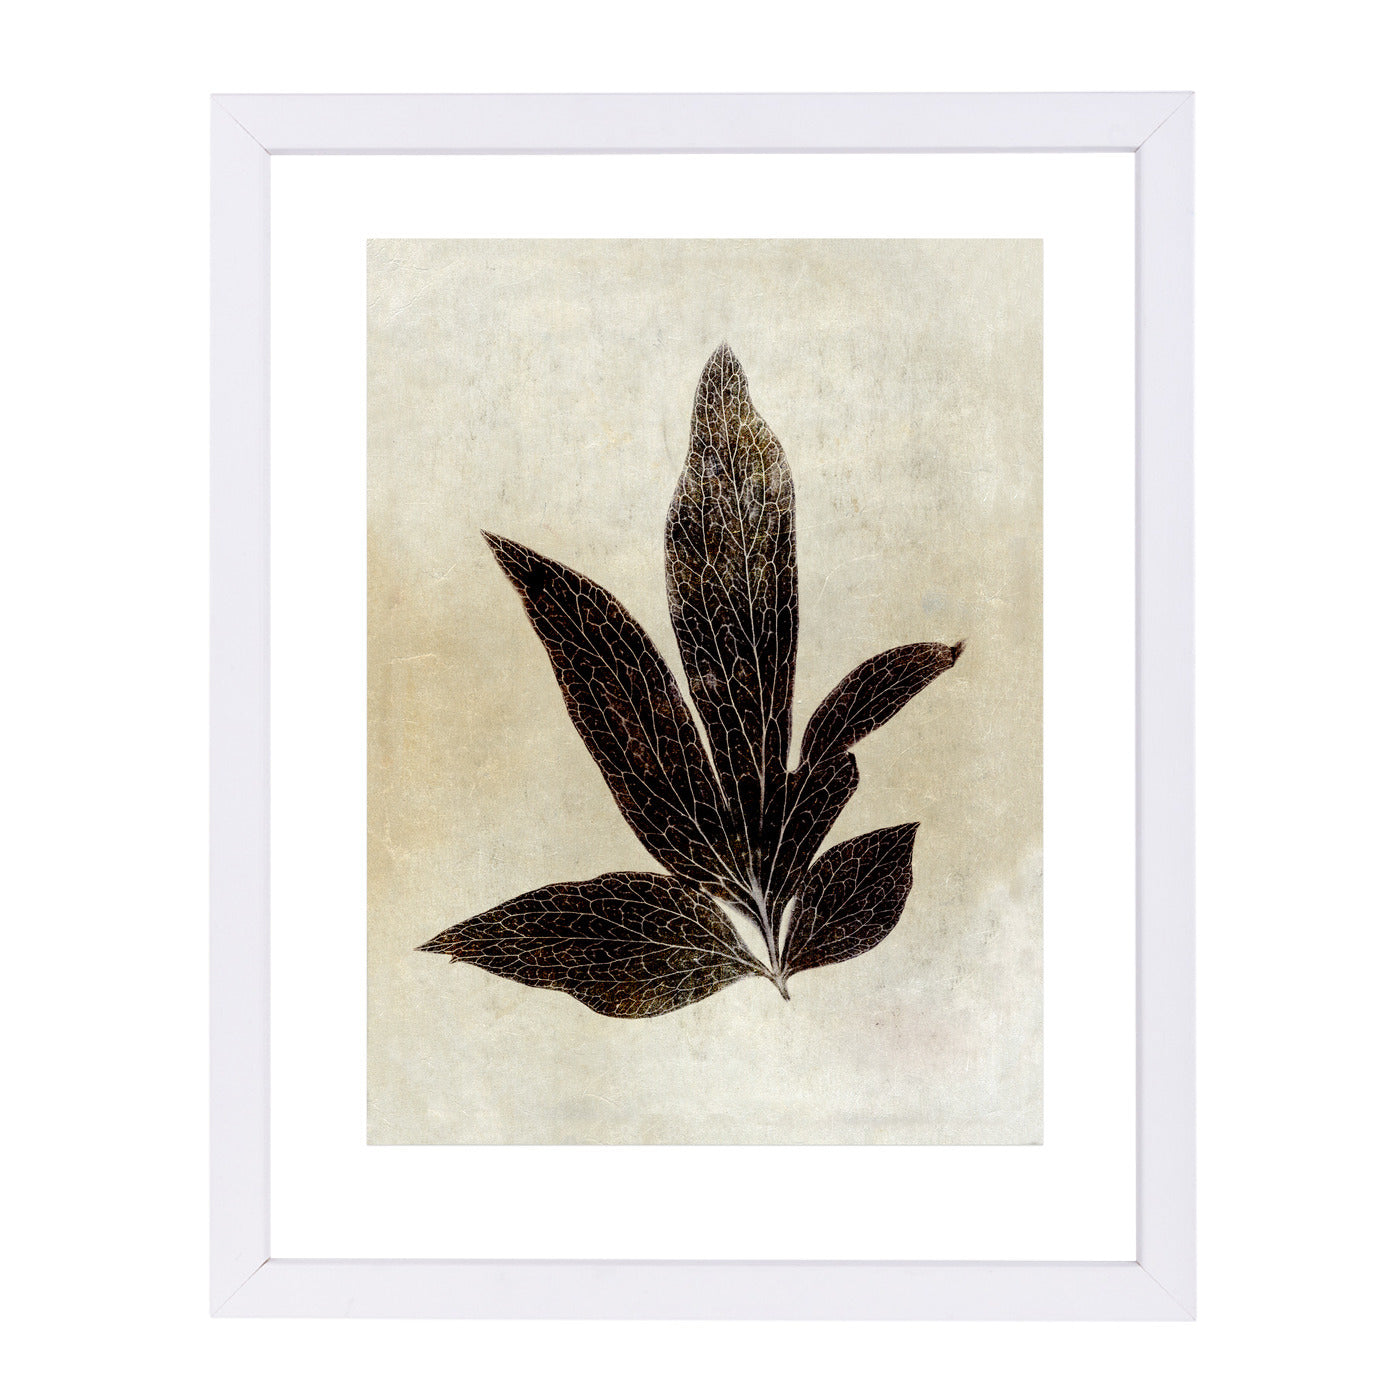 Sepia Leaf Collage I By Chaos & Wonder Design - White Framed Print - Wall Art - Americanflat